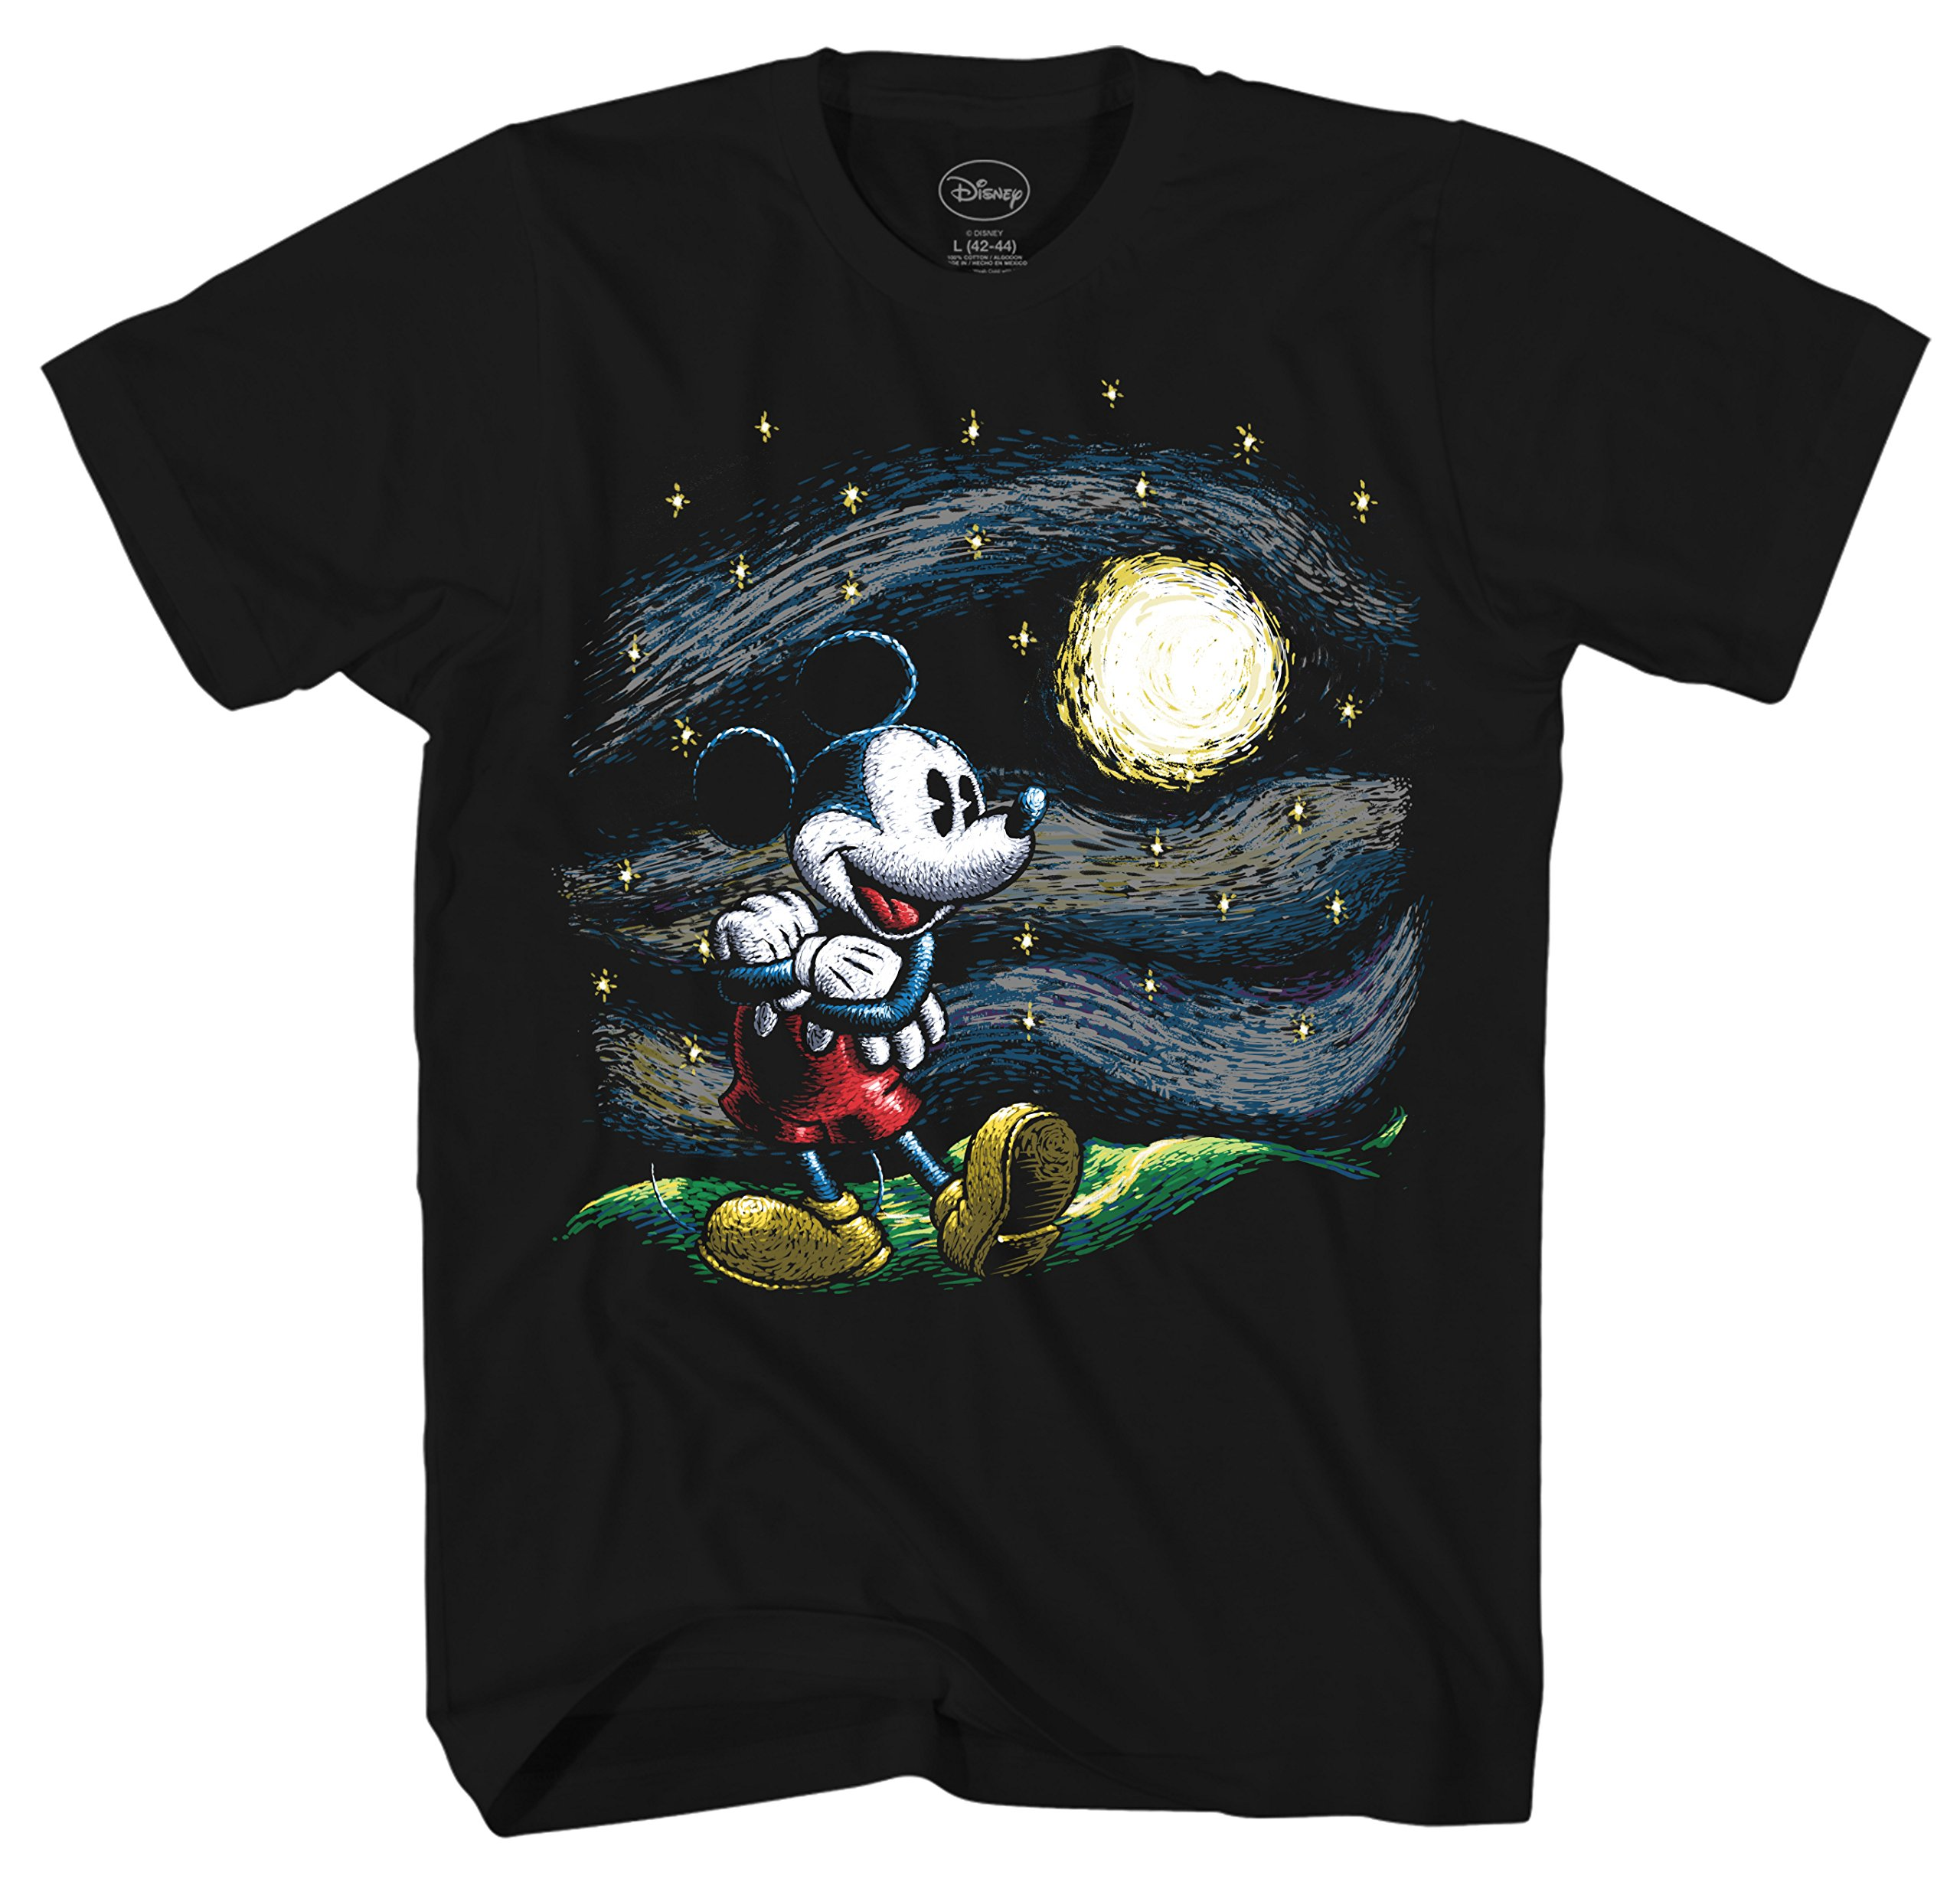 Cheap Mickey Tee Shirt Find Mickey Tee Shirt Deals On Line At